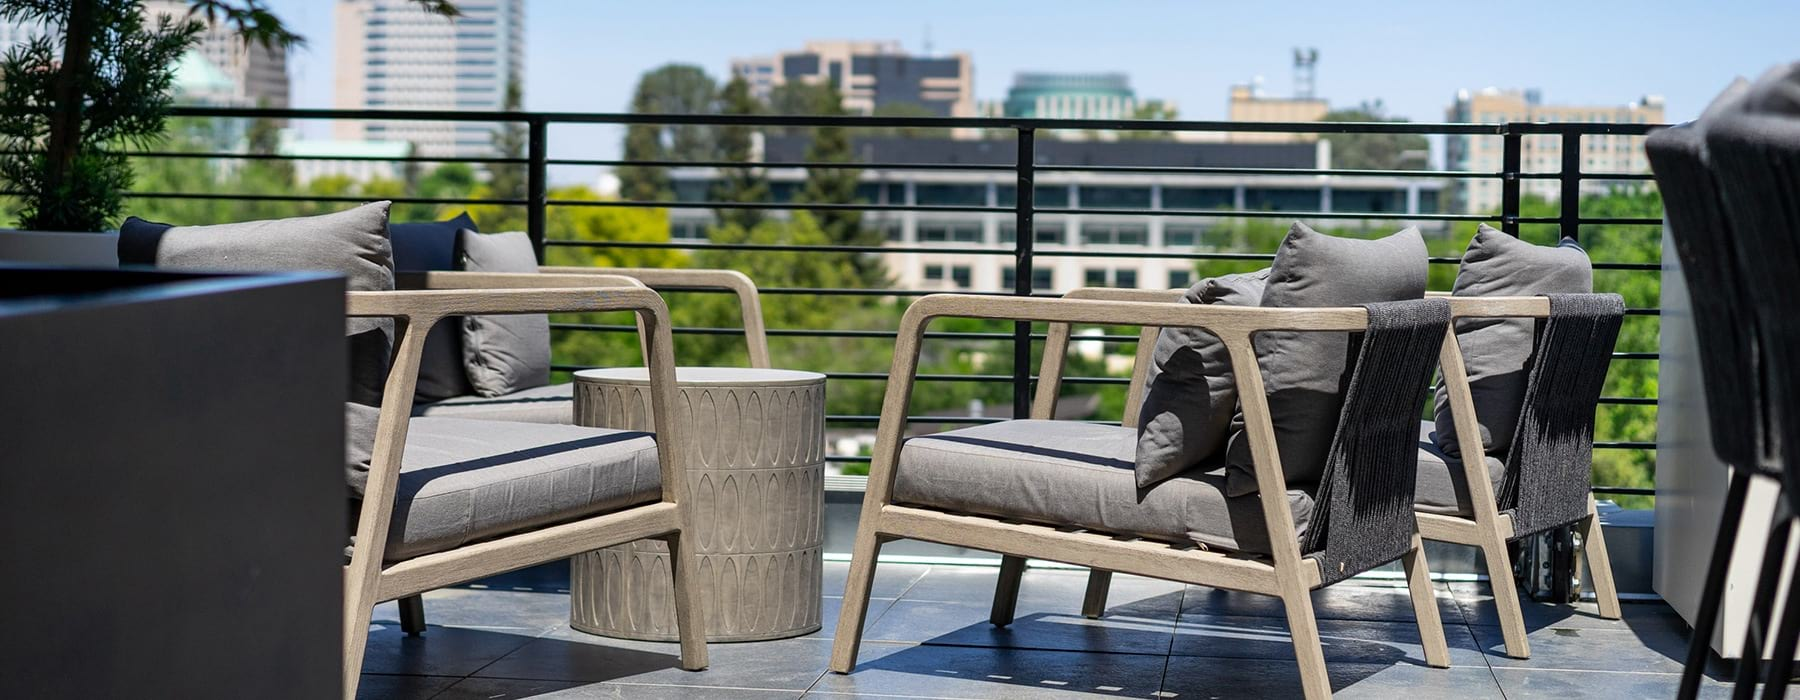 spacious patio with modern seating and views of nearby city skyline